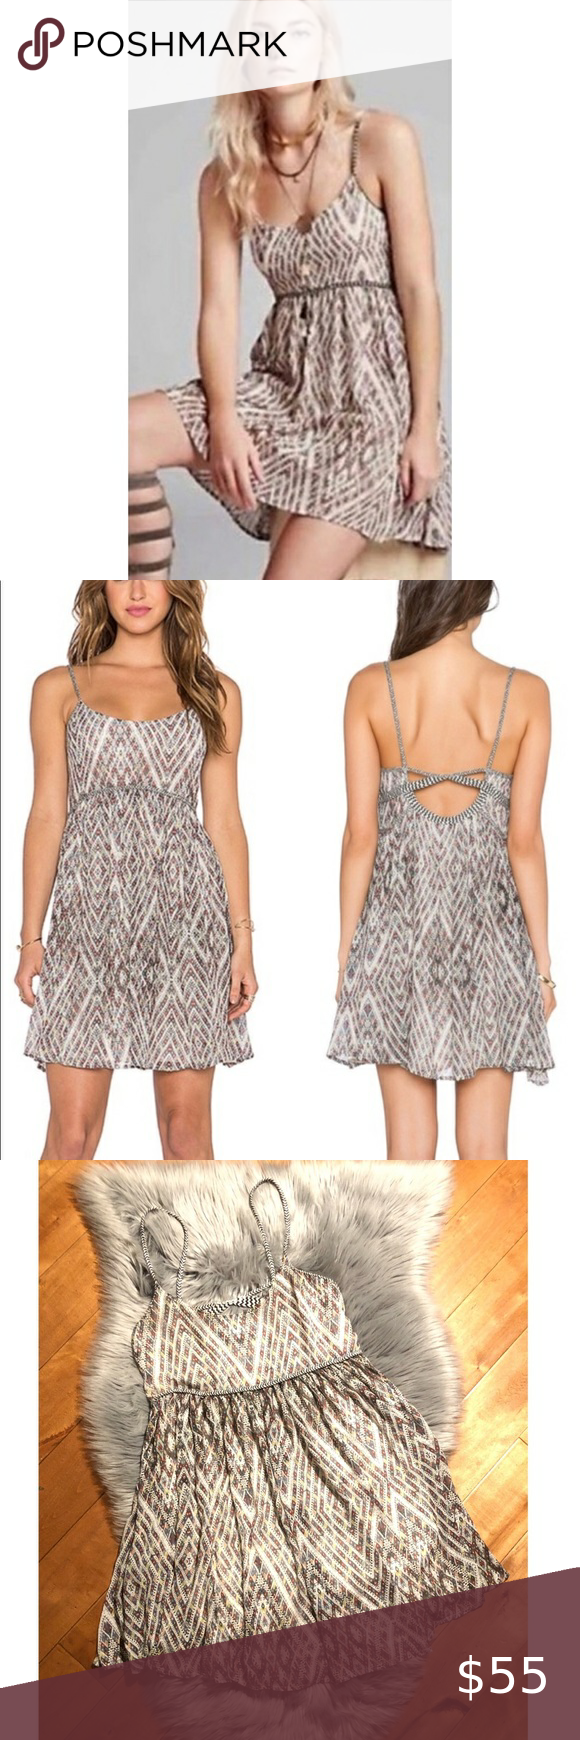 """Free People """"Periscope in The Sky""""Babydoll Dress"""